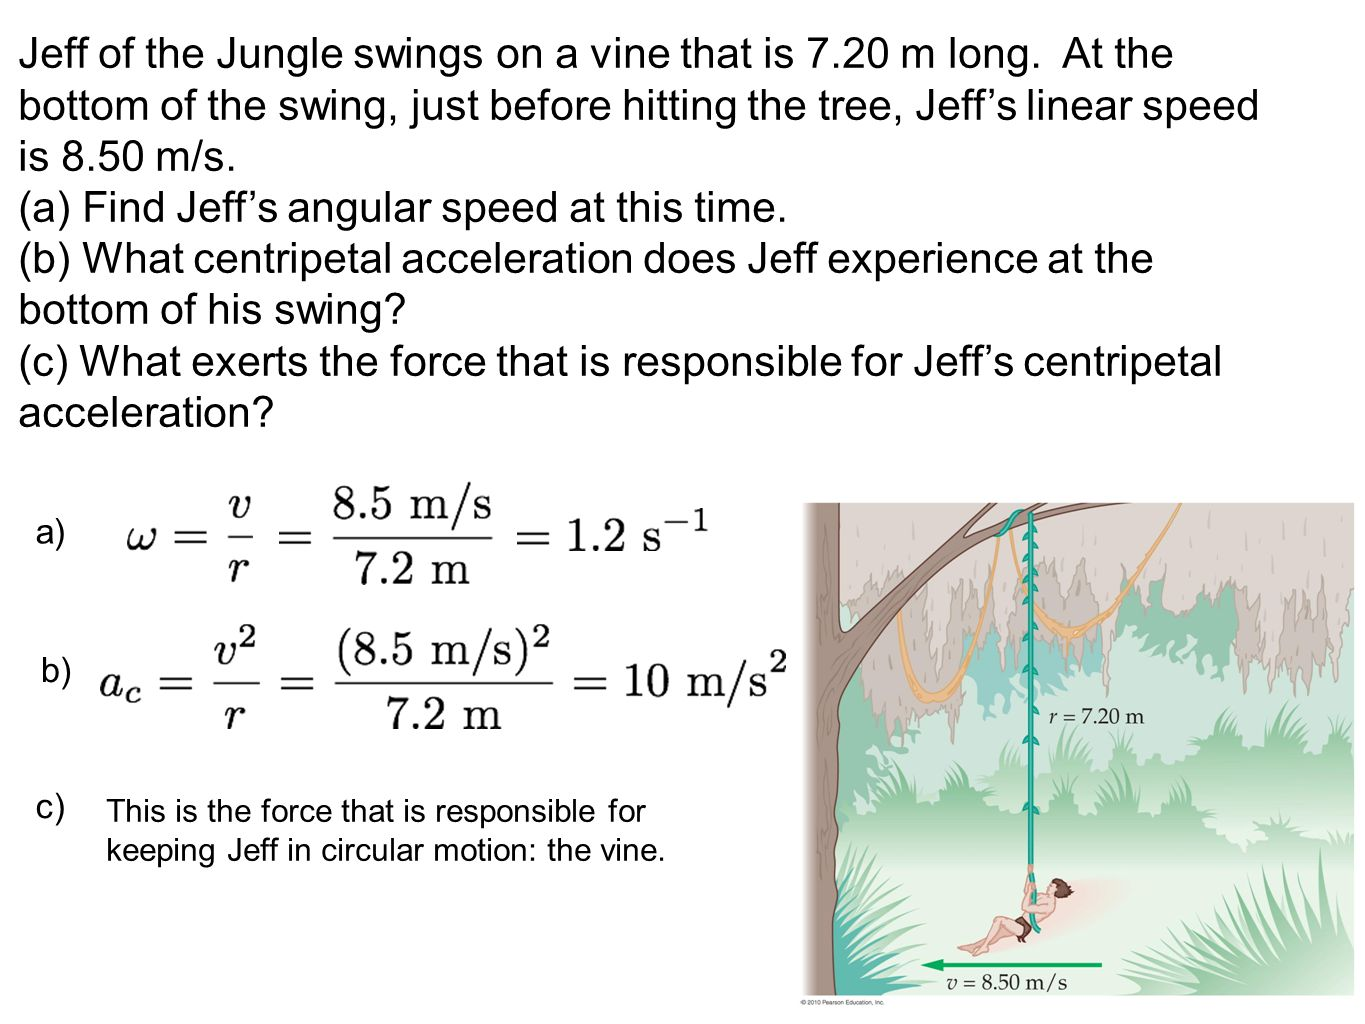 (a) Find Jeff's angular speed at this time.